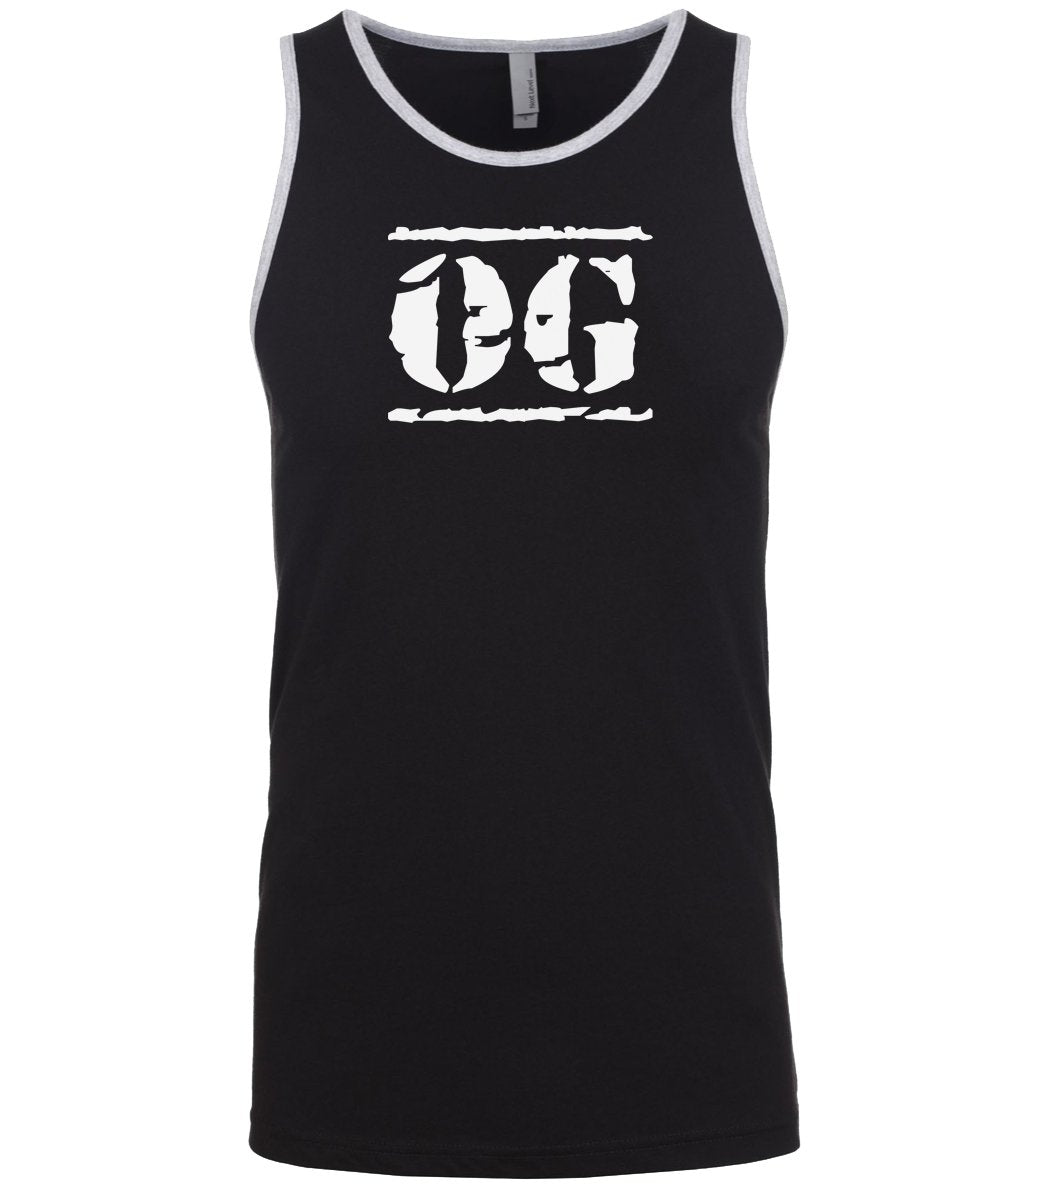 black og mens tank top